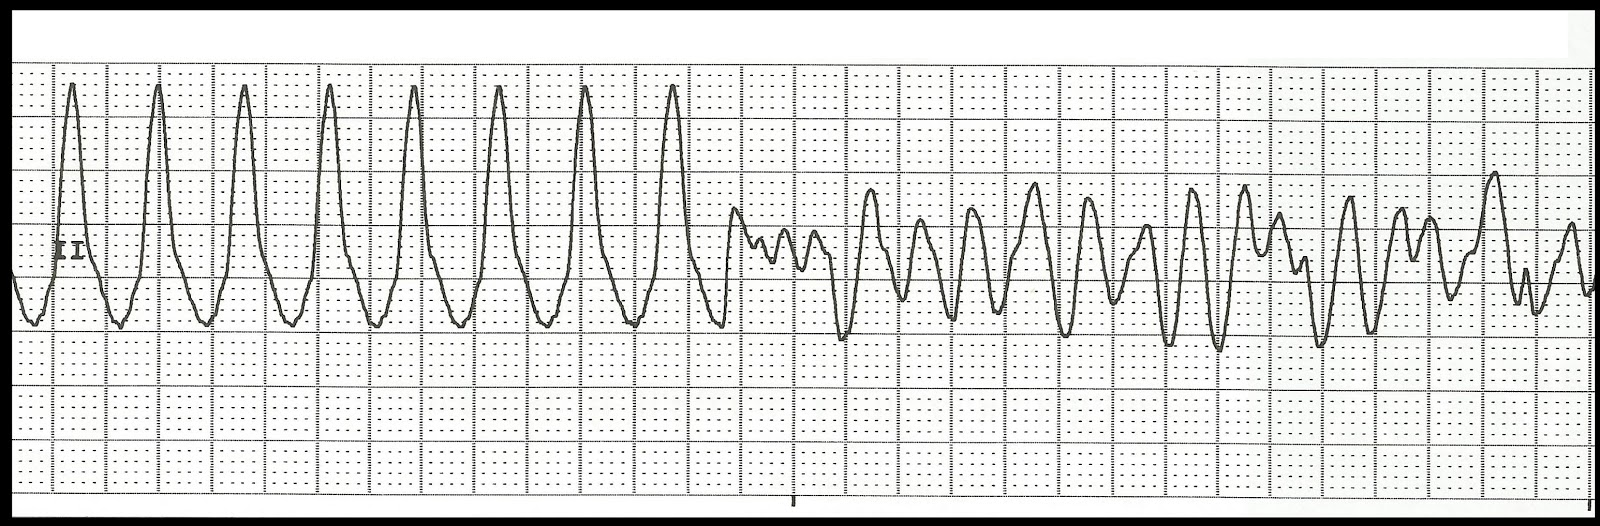 Telemetry Technician Course: Practice EKG Strips (class 8)